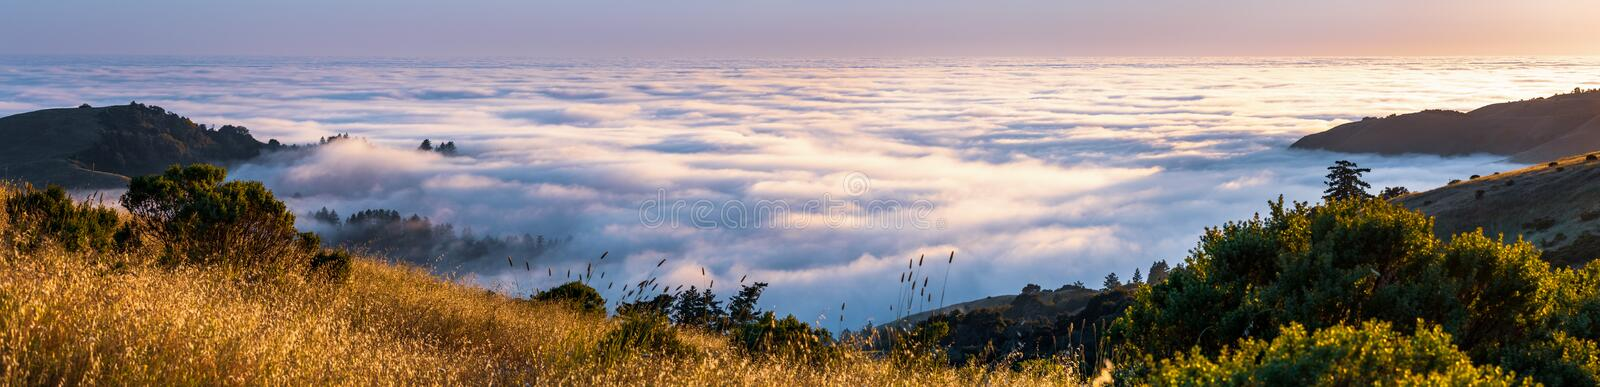 Panoramic view at sunset of valley covered in a sea of clouds in the Santa Cruz mountains, San Francisco bay area, California stock image